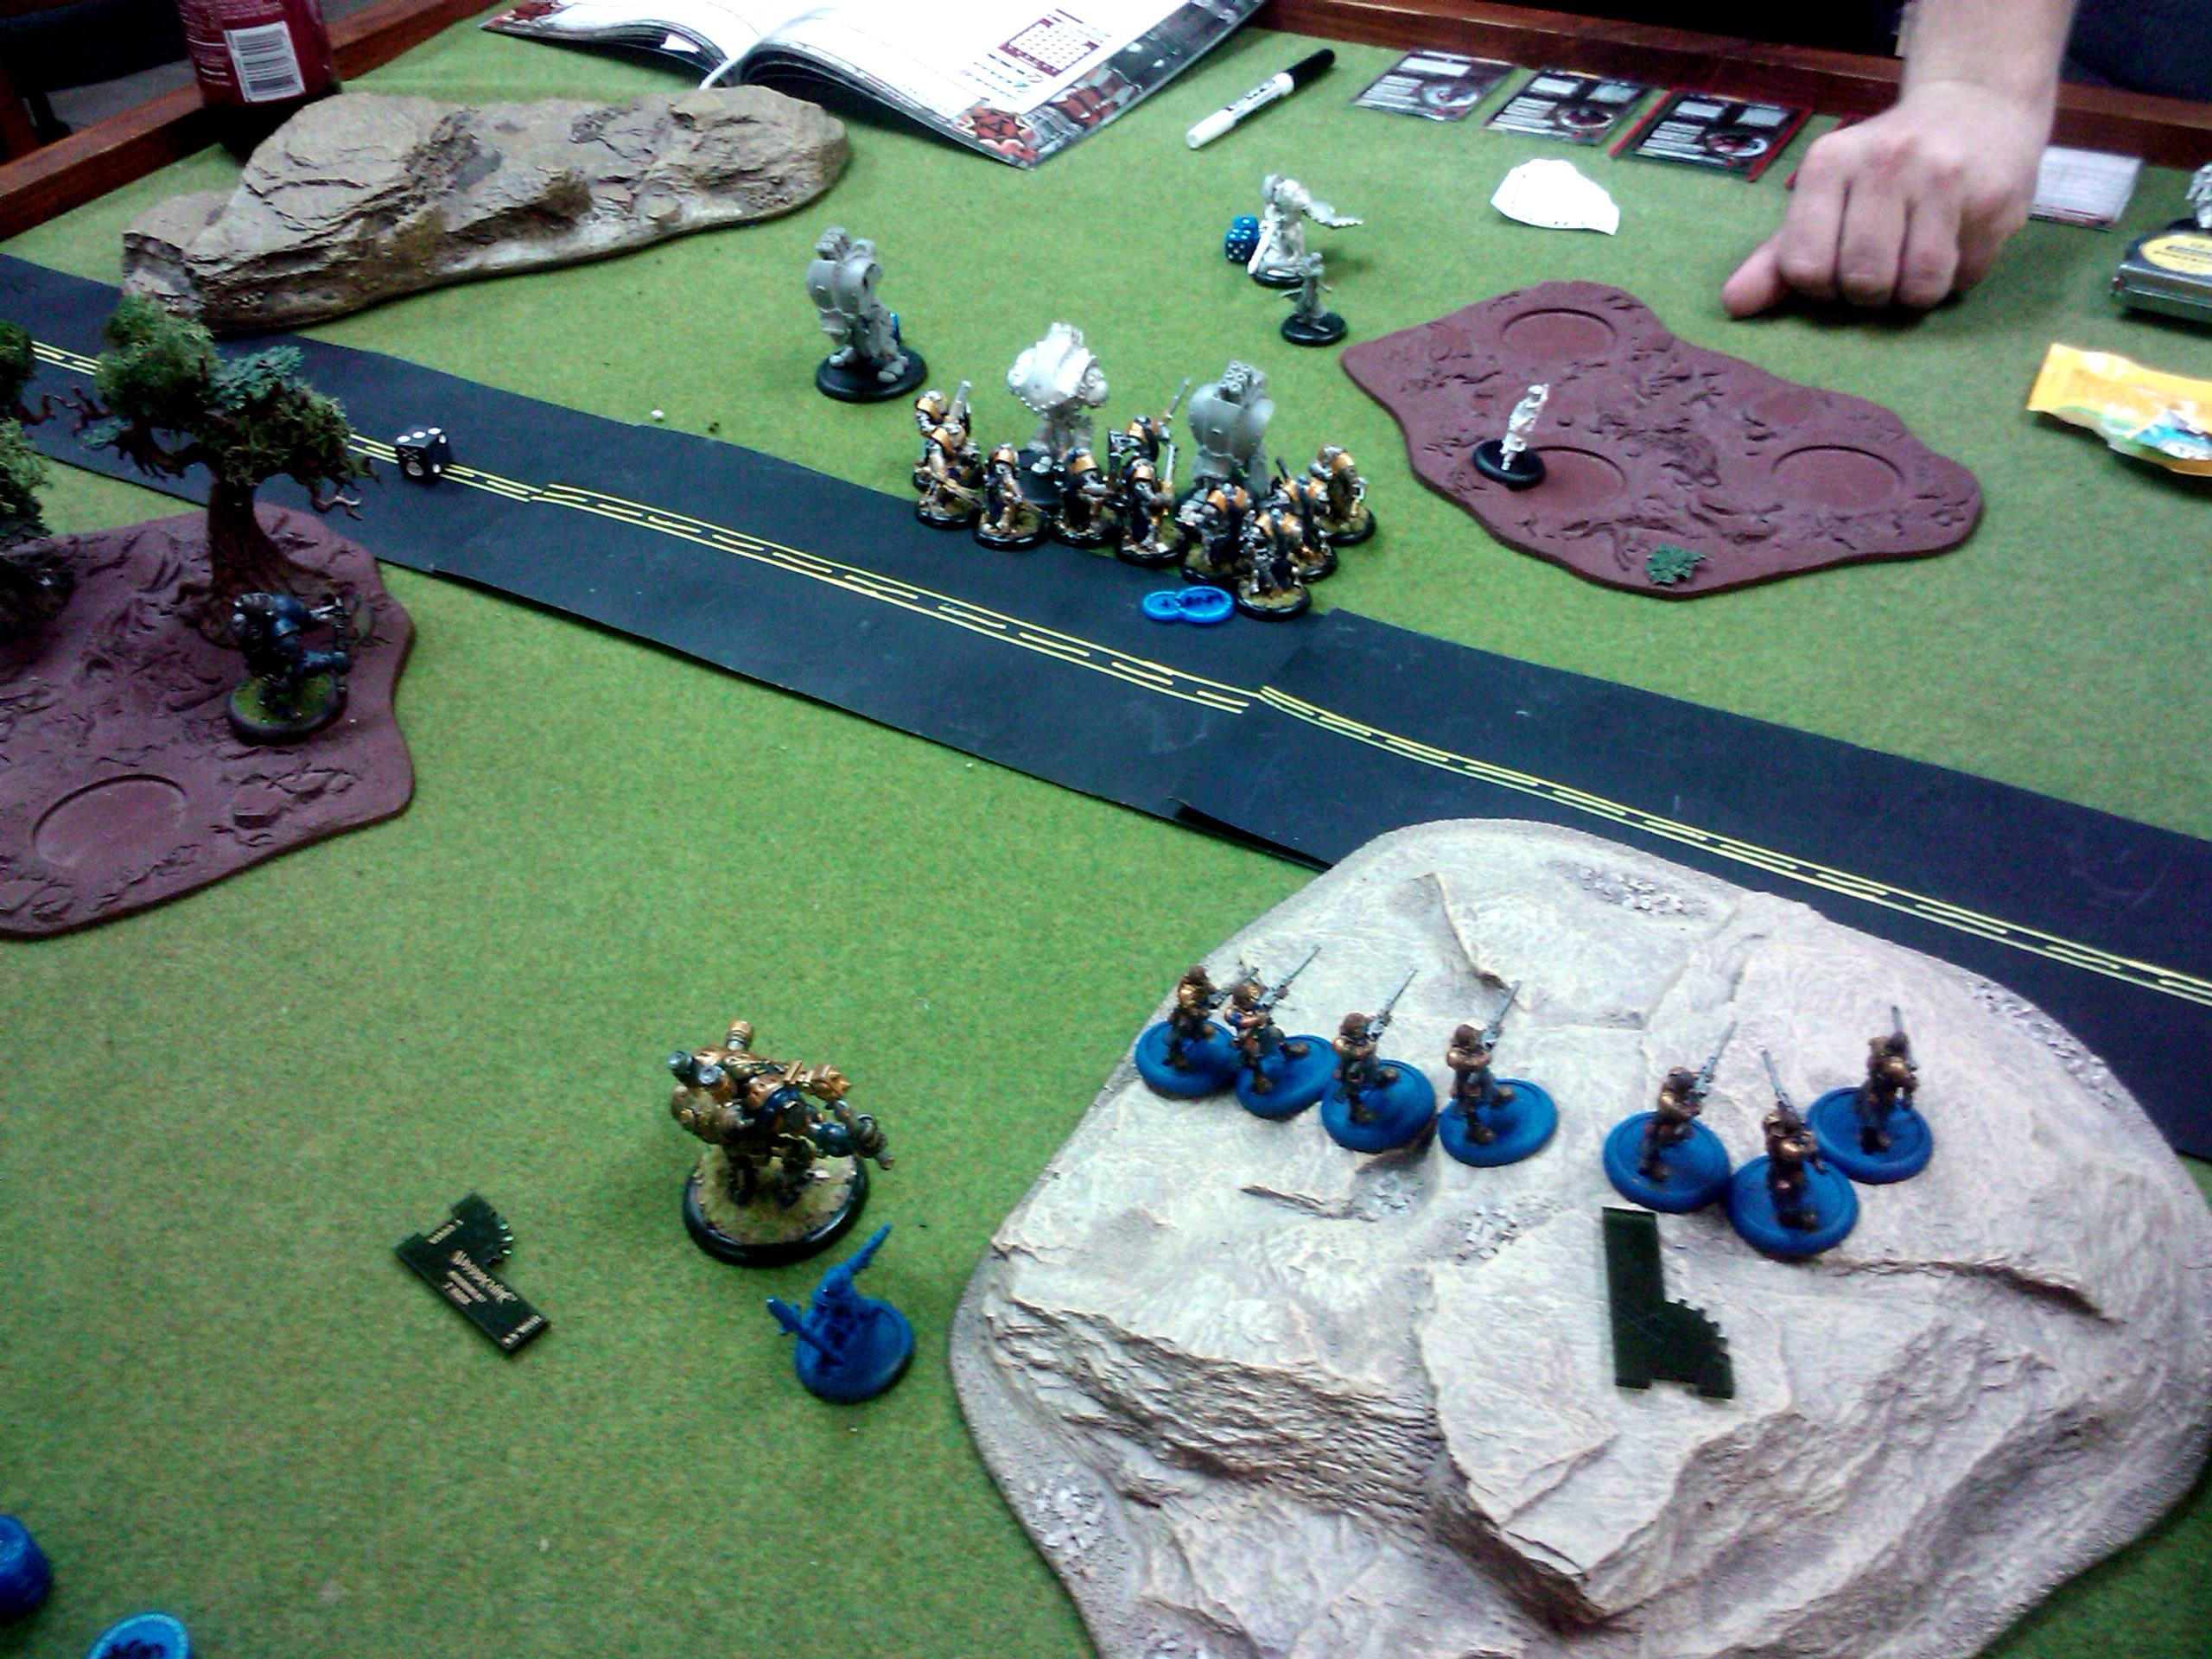 Battle Box, Battle Group, Battlebox, Cryx, Cygnar, Design, Hordes, Khador, Legion, Mercenary, Painting, Privateer Press, Protectorate Of Menoth, Retribution, Rhulic, Tabletop, War Caster, War Jack, War Pack, Warcaster, Wargame, Warjack, Warlock, Warmachine, Warpack